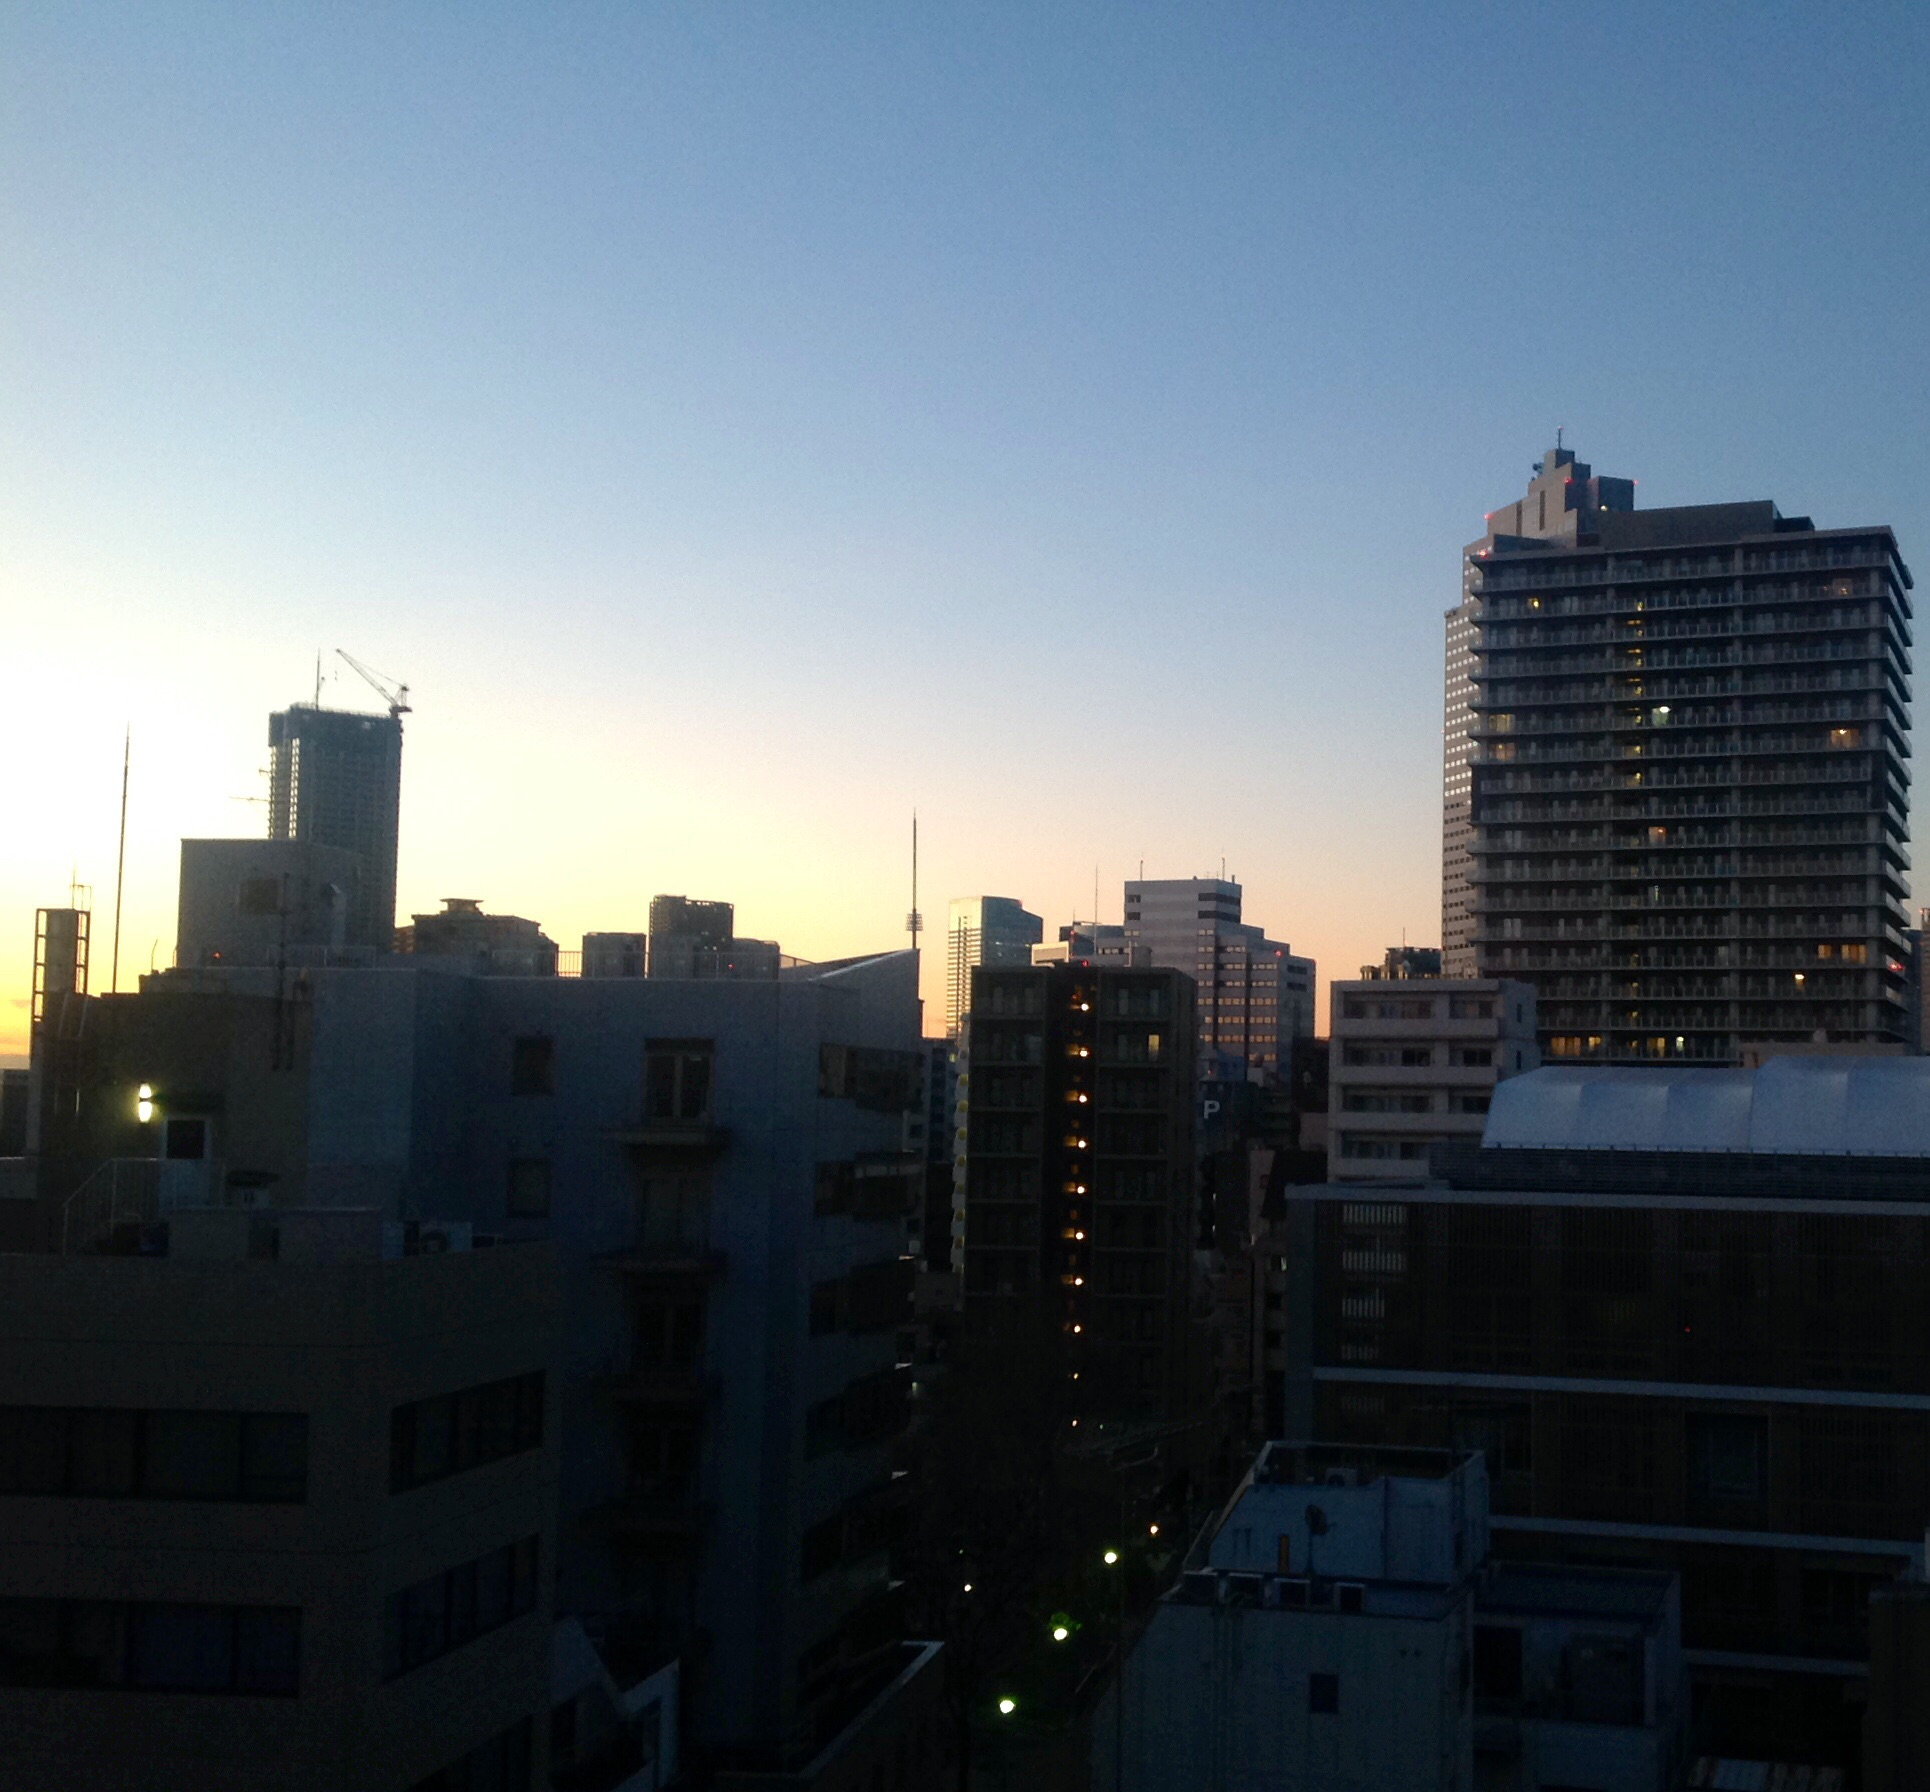 A pinky- blue dawn with a tiny bit of Tokyo skyline. The buildings have a few lights, but it's earlyand people are sleeping.